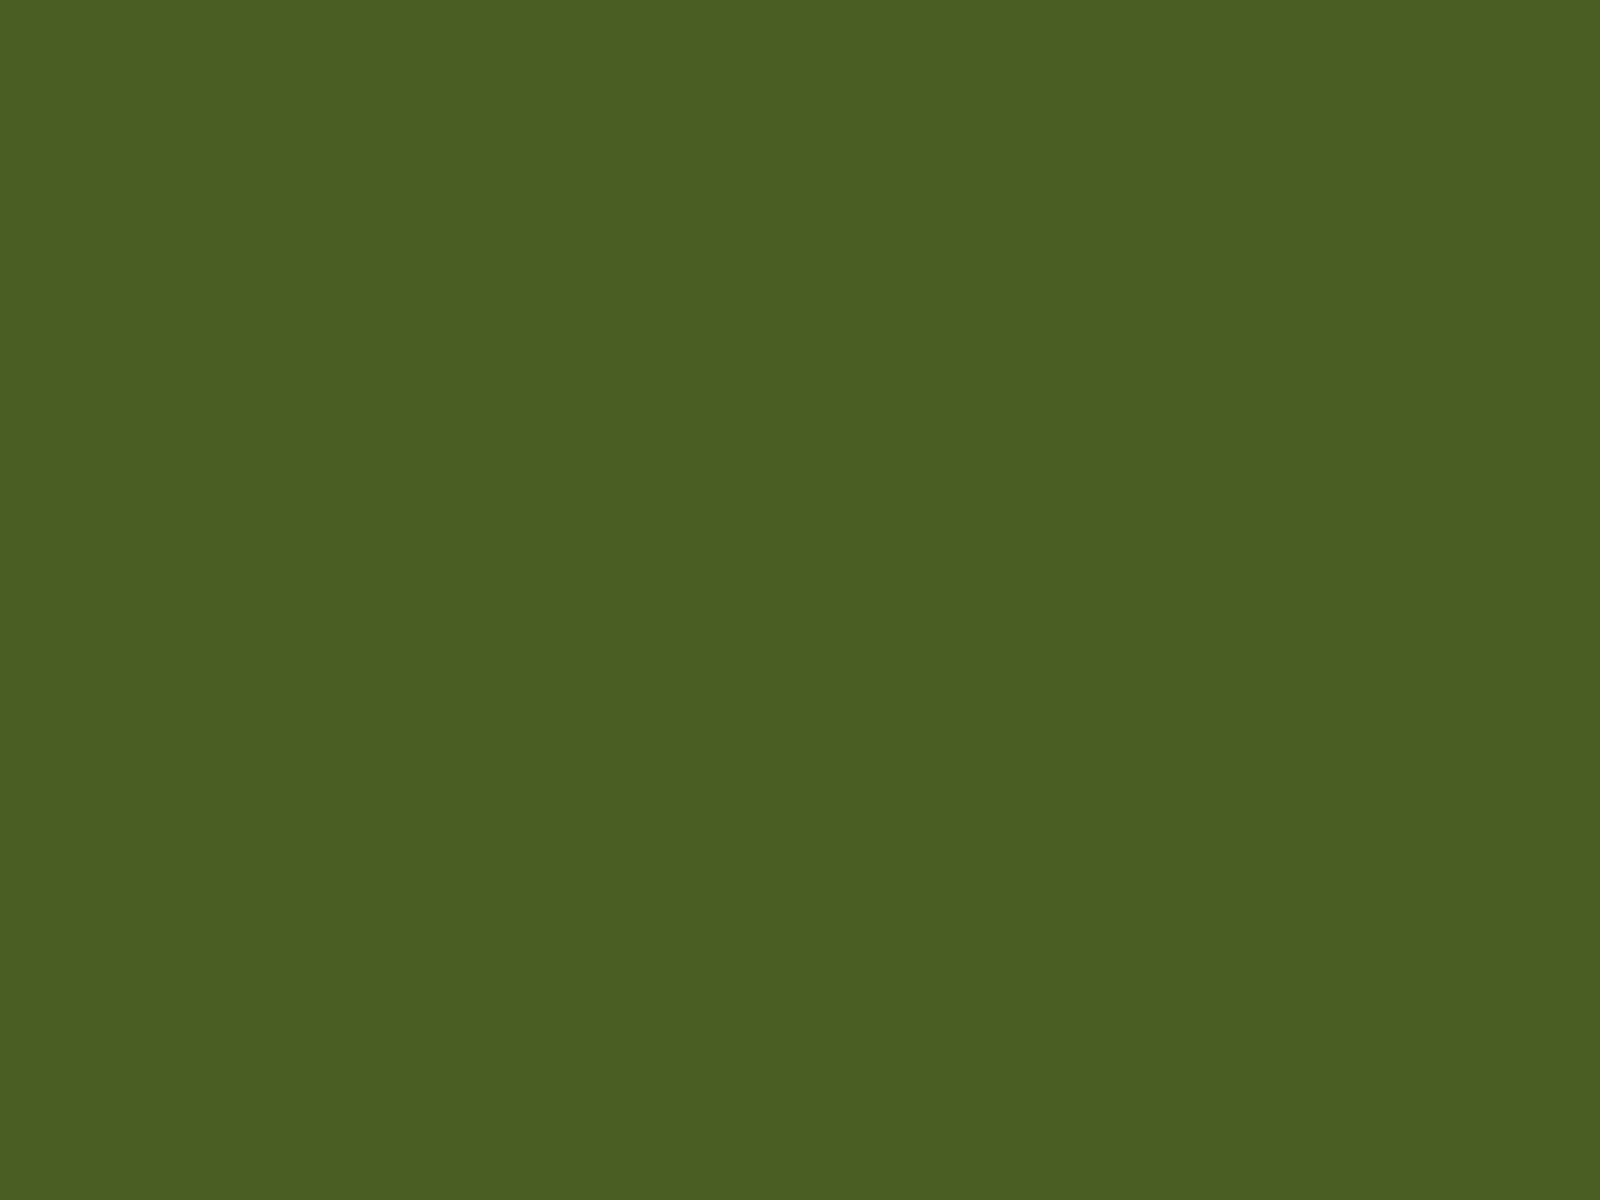 1600x1200 Dark Moss Green Solid Color Background